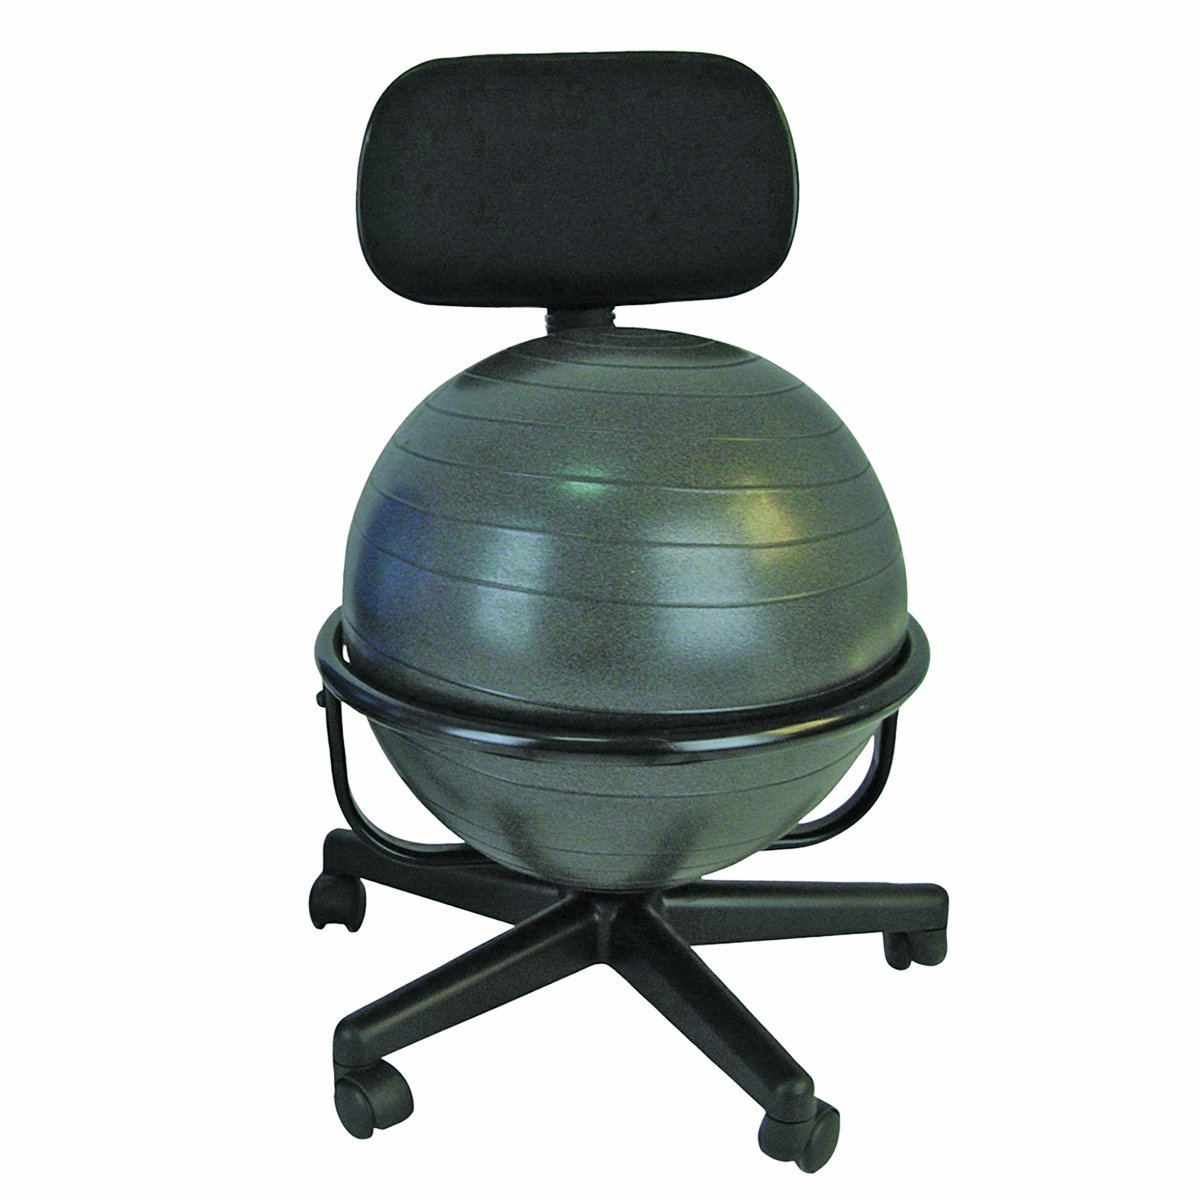 100 medicine ball office chair judul blog exercise ball chair with arms balance. Black Bedroom Furniture Sets. Home Design Ideas